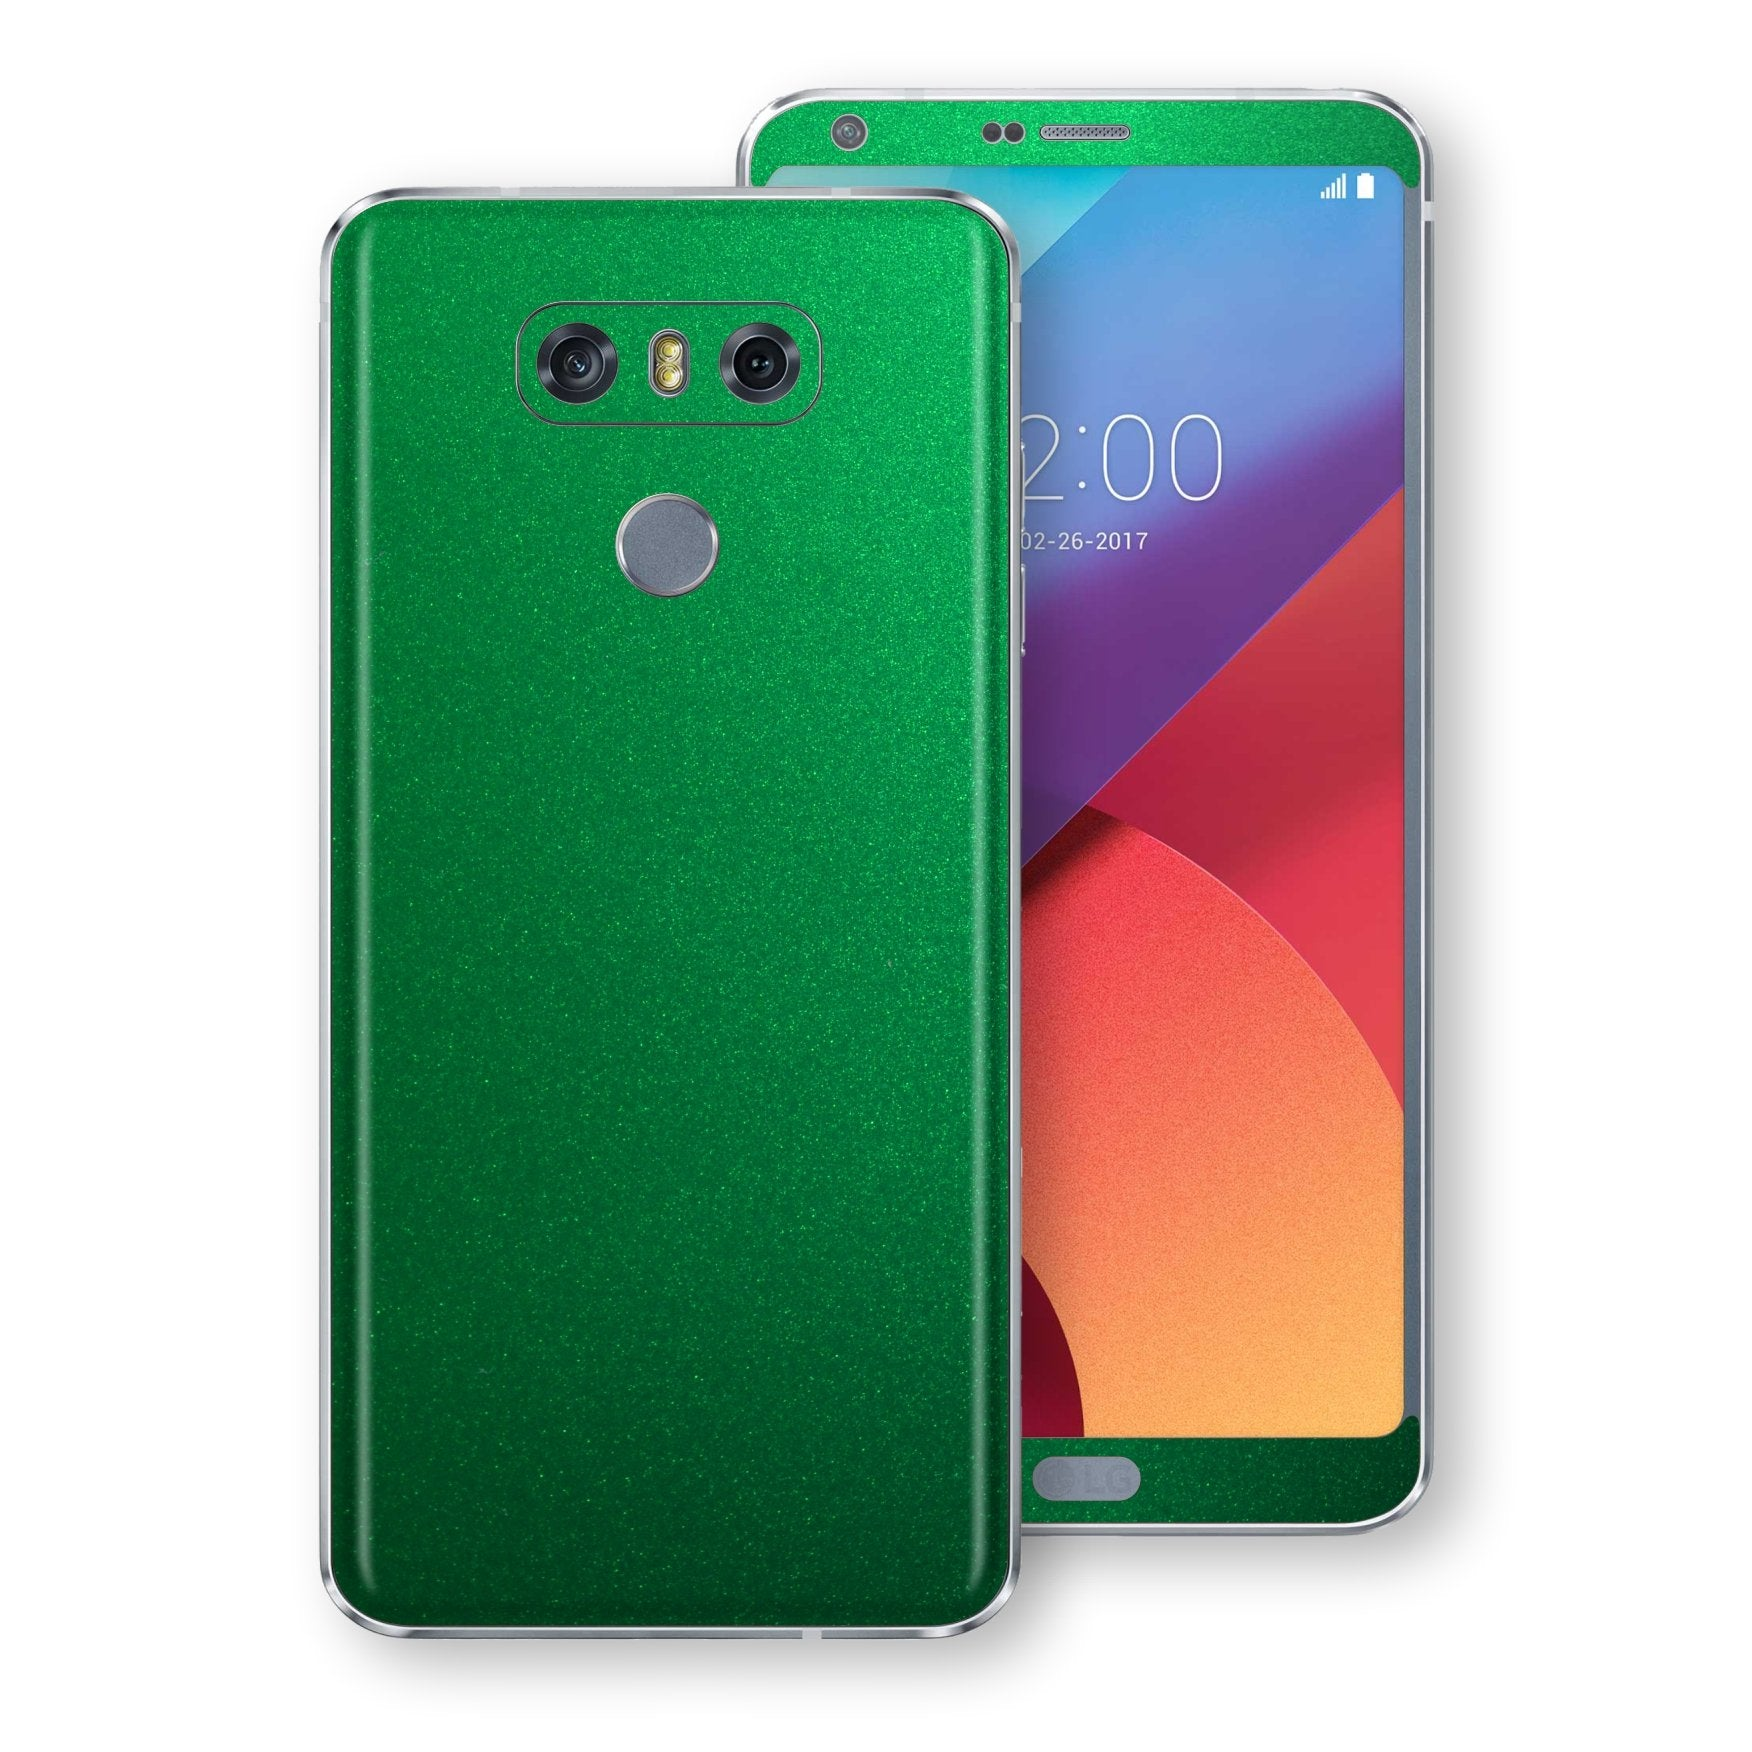 LG G6 Viper Green Tuning Metallic Skin, Decal, Wrap, Protector, Cover by EasySkinz | EasySkinz.com